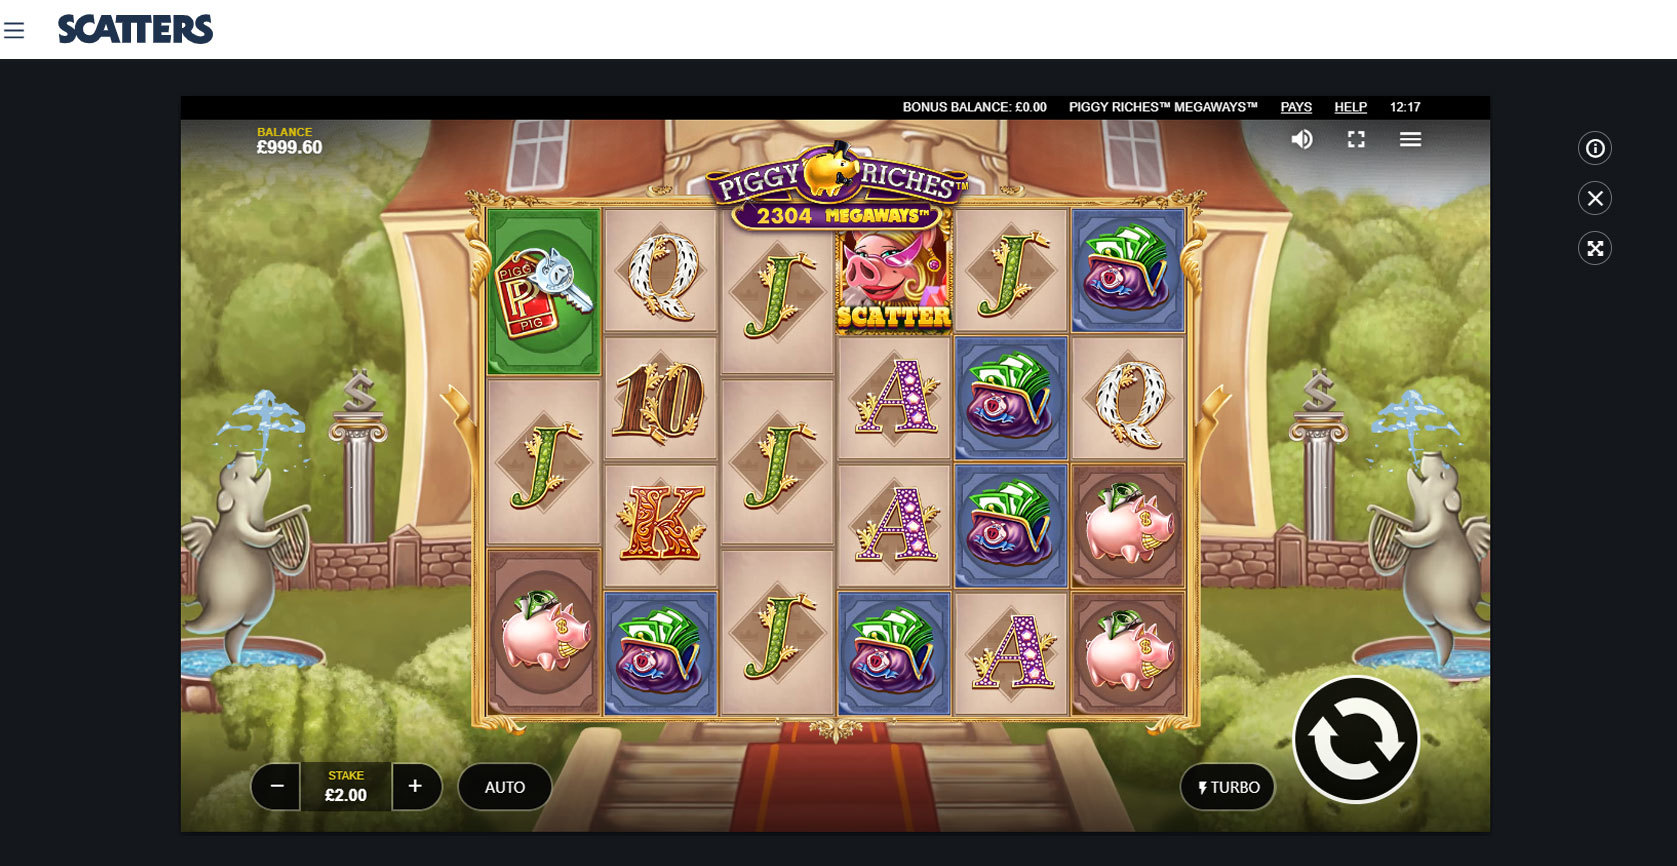 Play Piggy Riches Slot by Red Tiger for Free or Real Money at Scatters